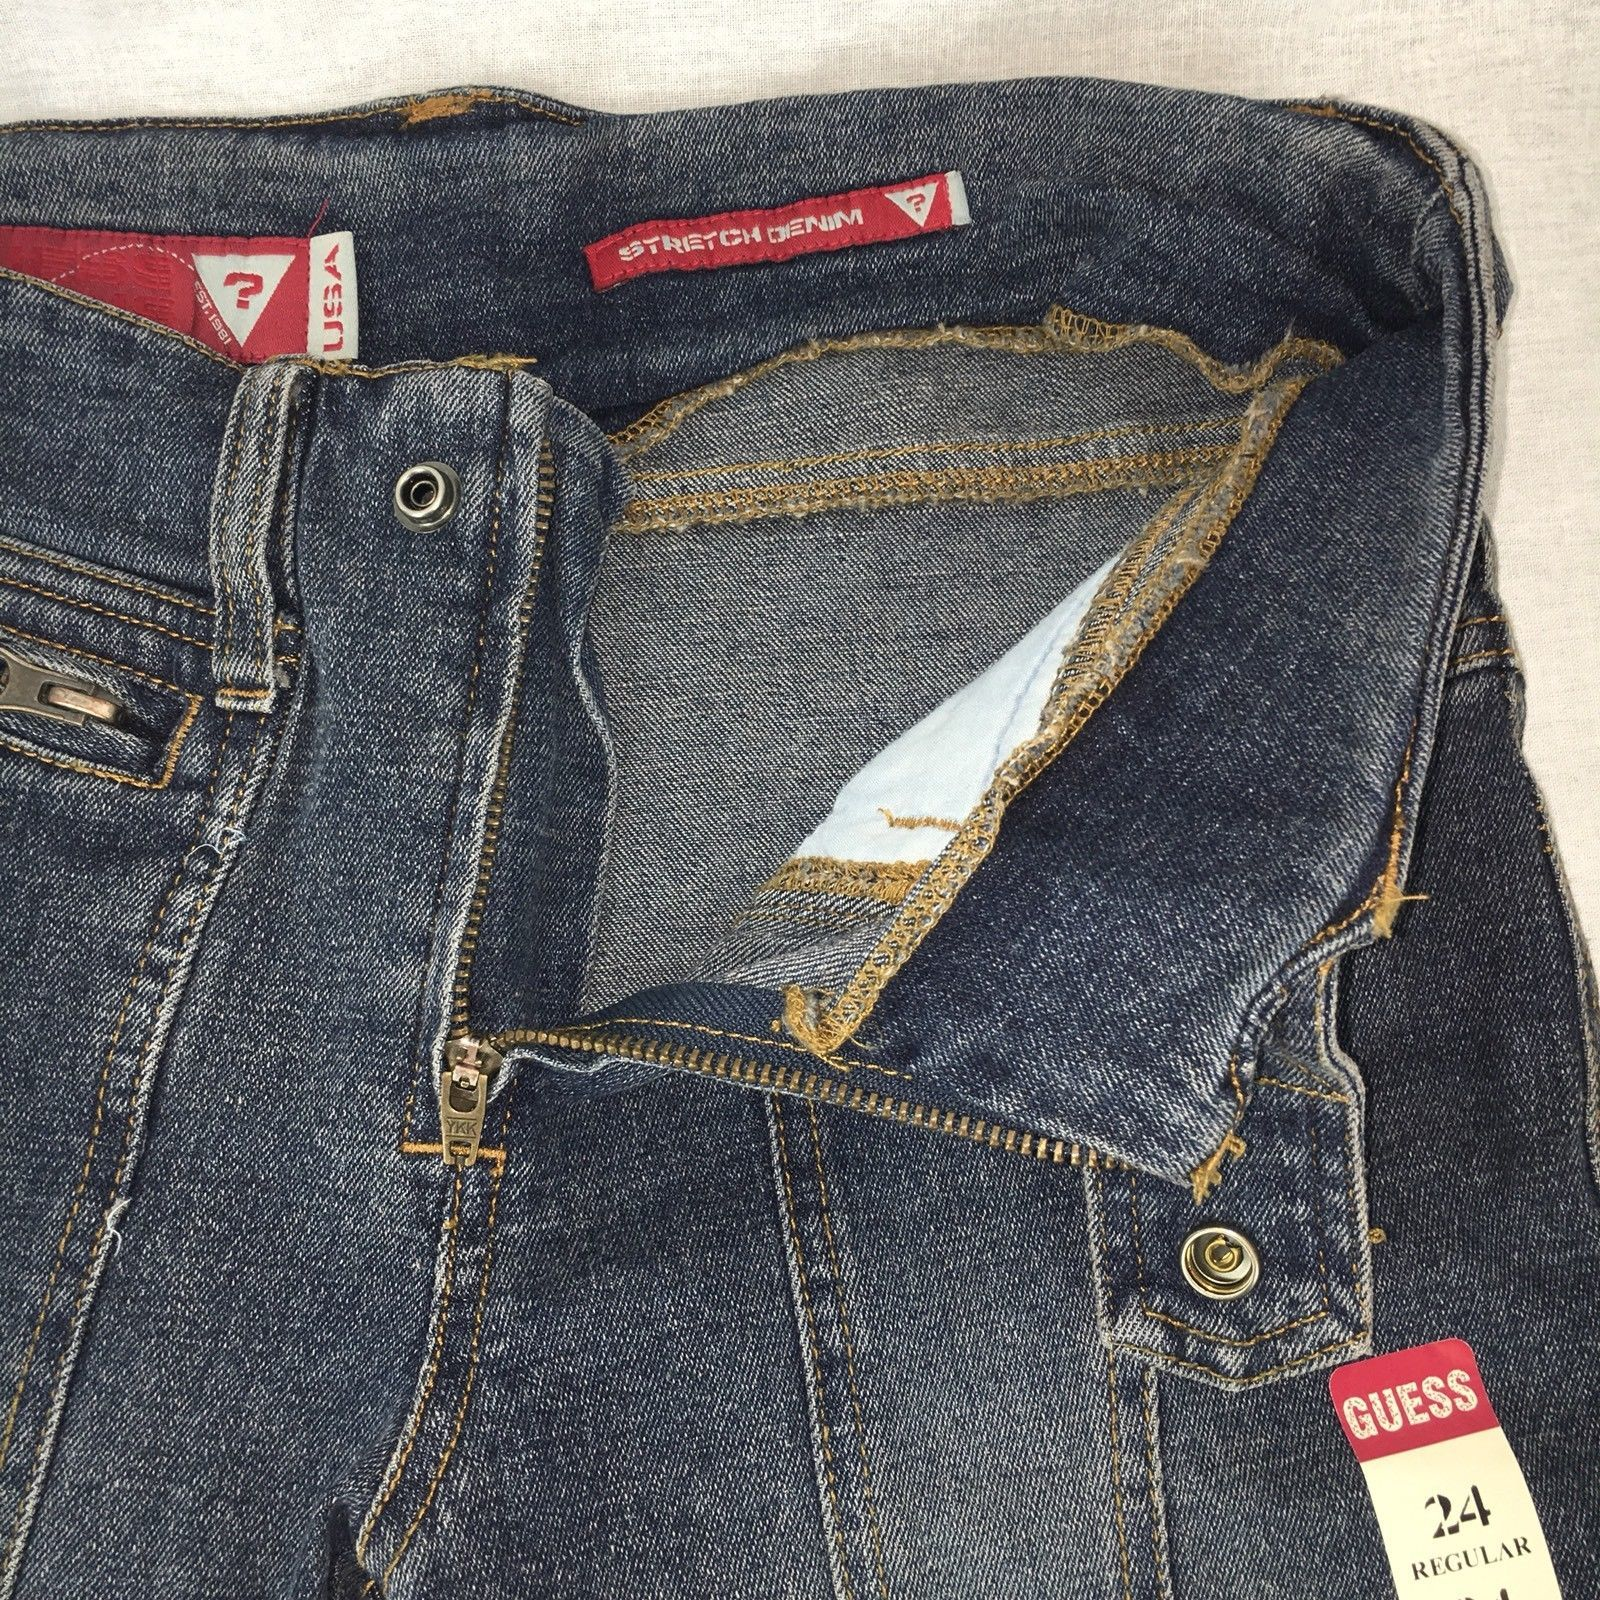 Guess Womens Jeans Boot Cut Retro Distressed Stretch Size 24Rx32